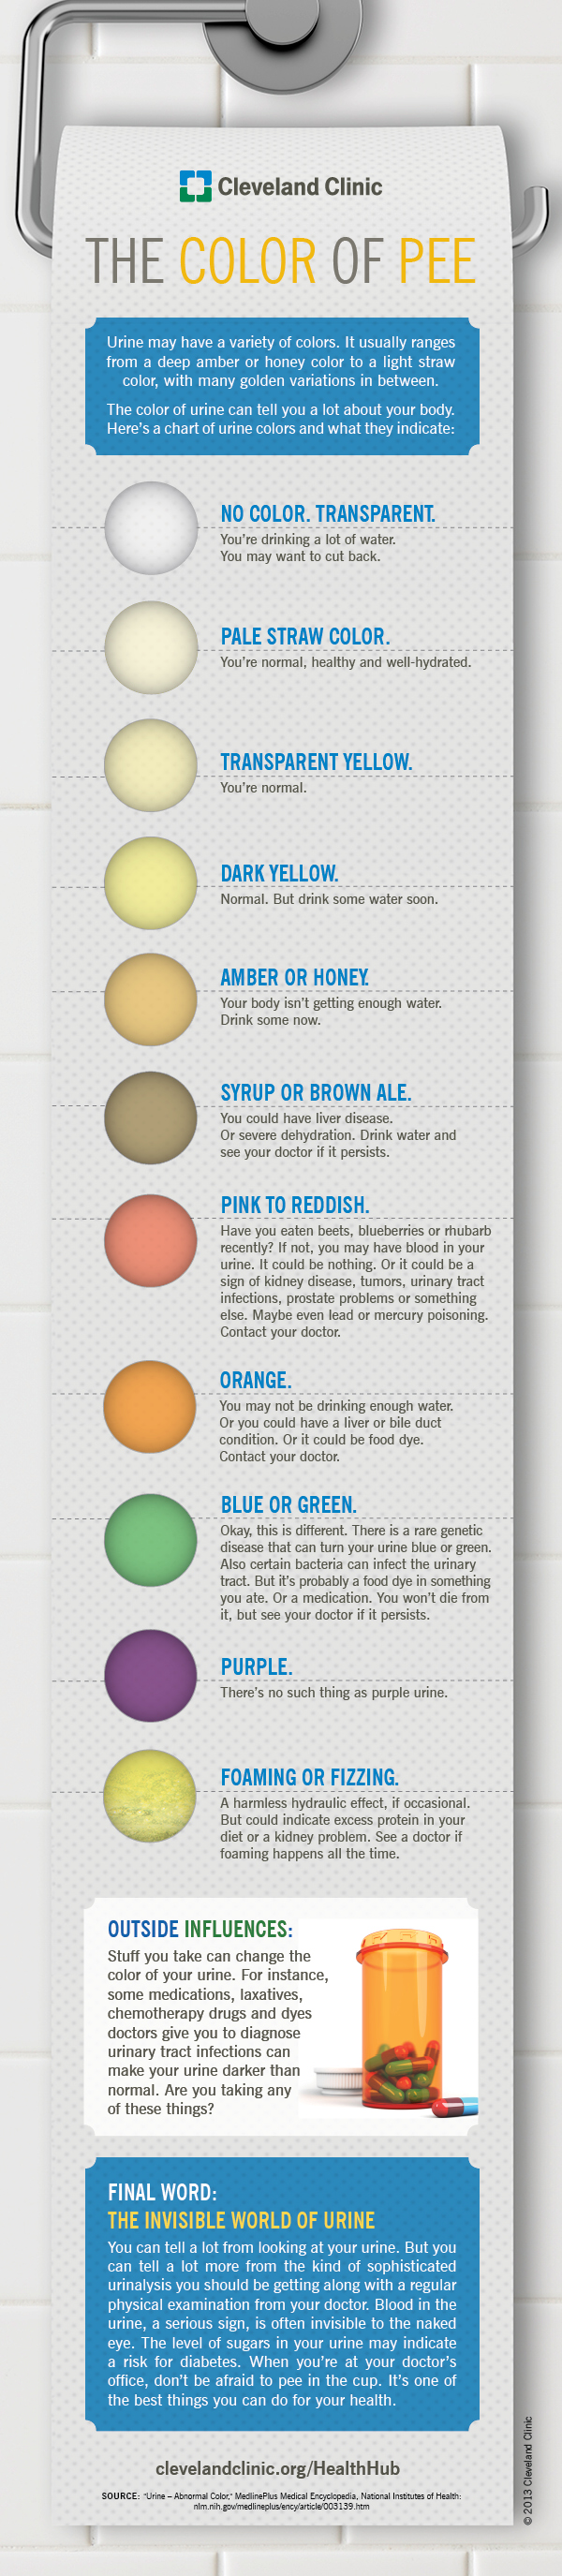 color-of-pee-infographic